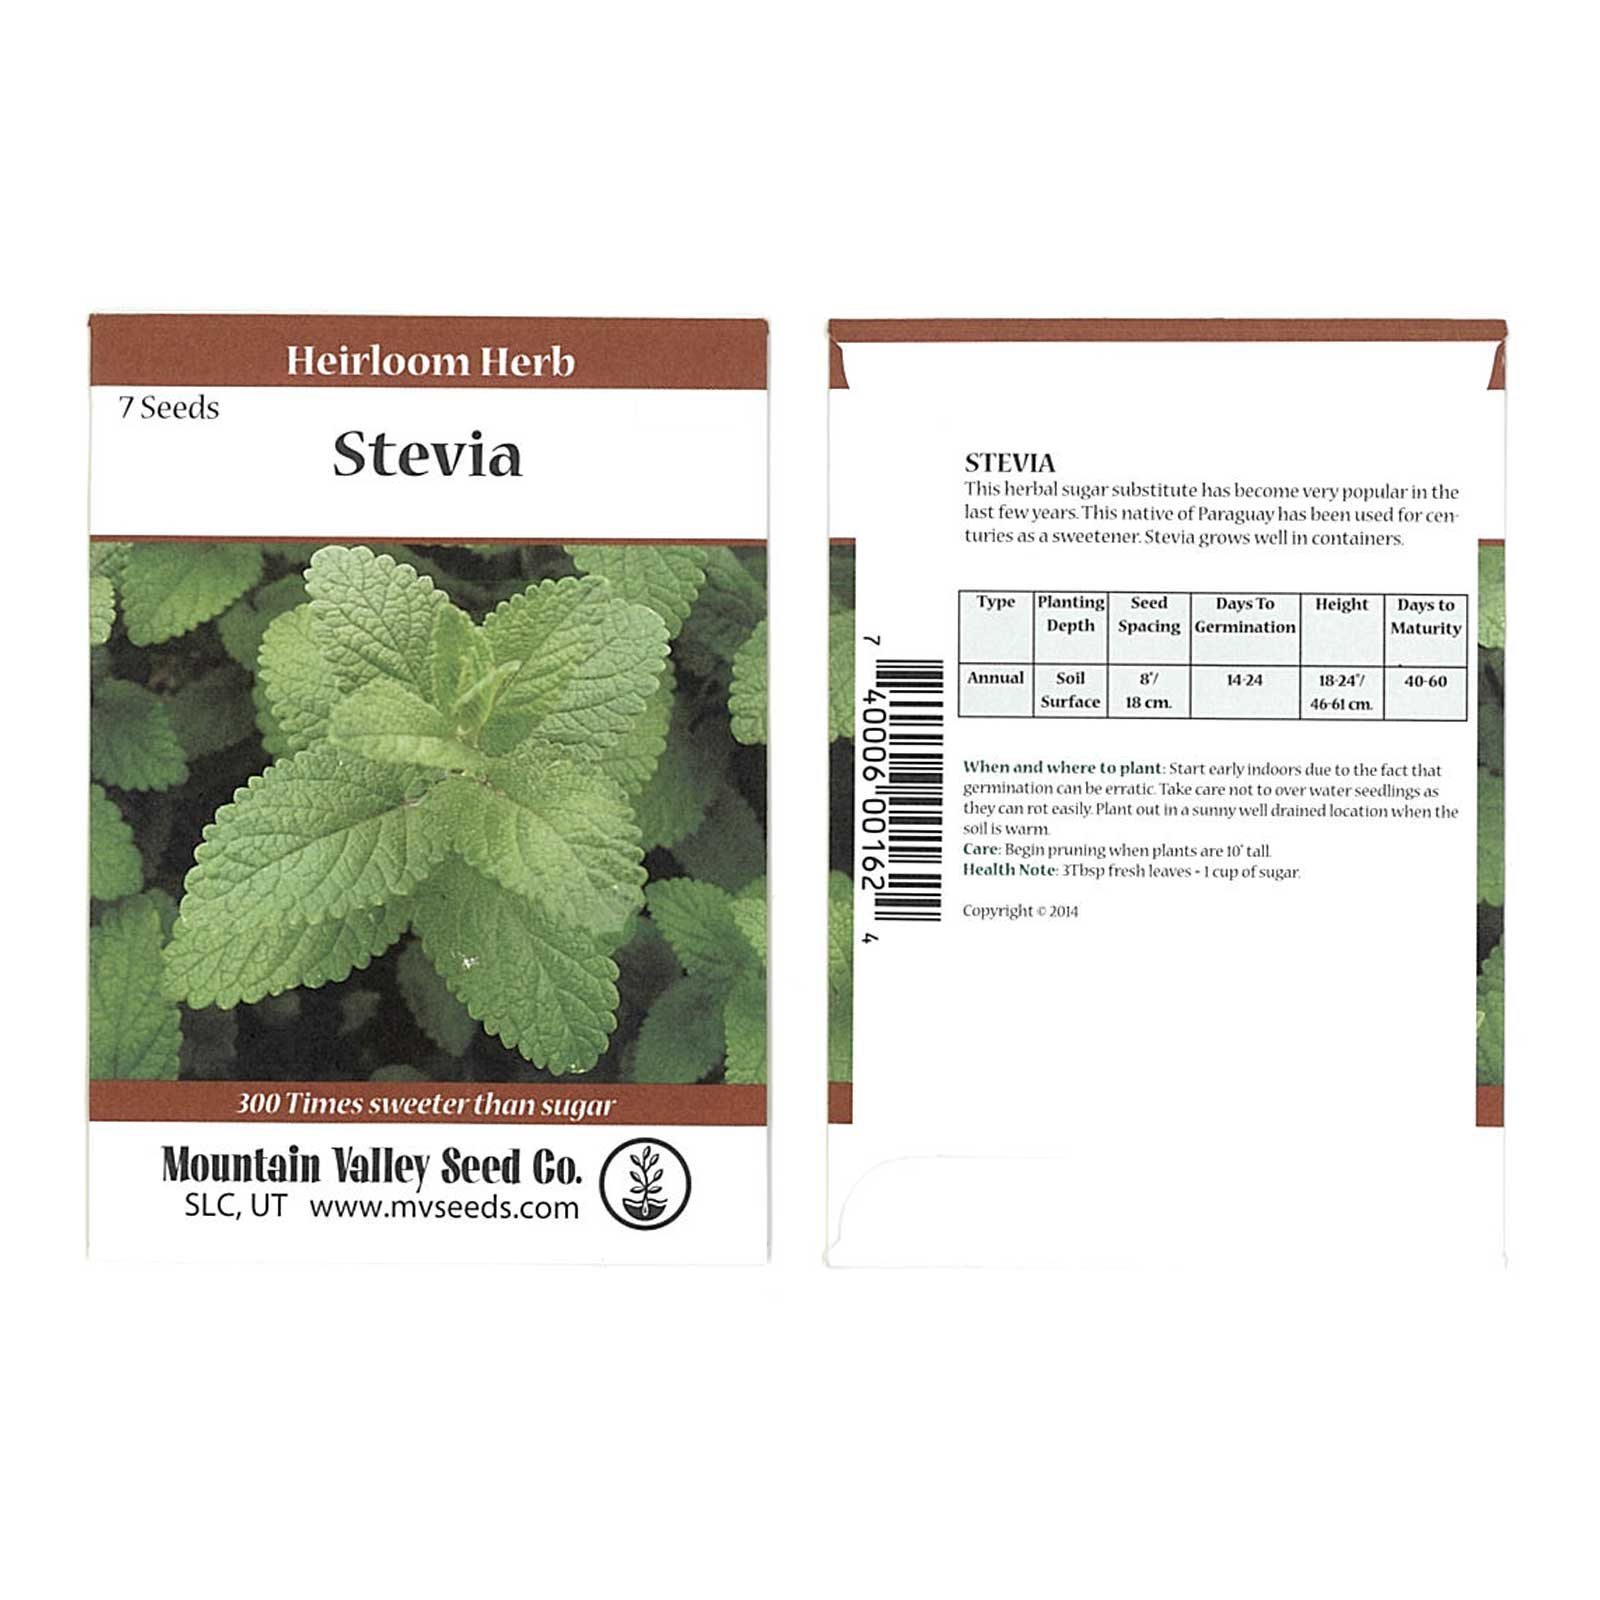 stevia sweet herb plant seeds - 7 seed packet - non-gmo, heirloom herbal  garden seeds